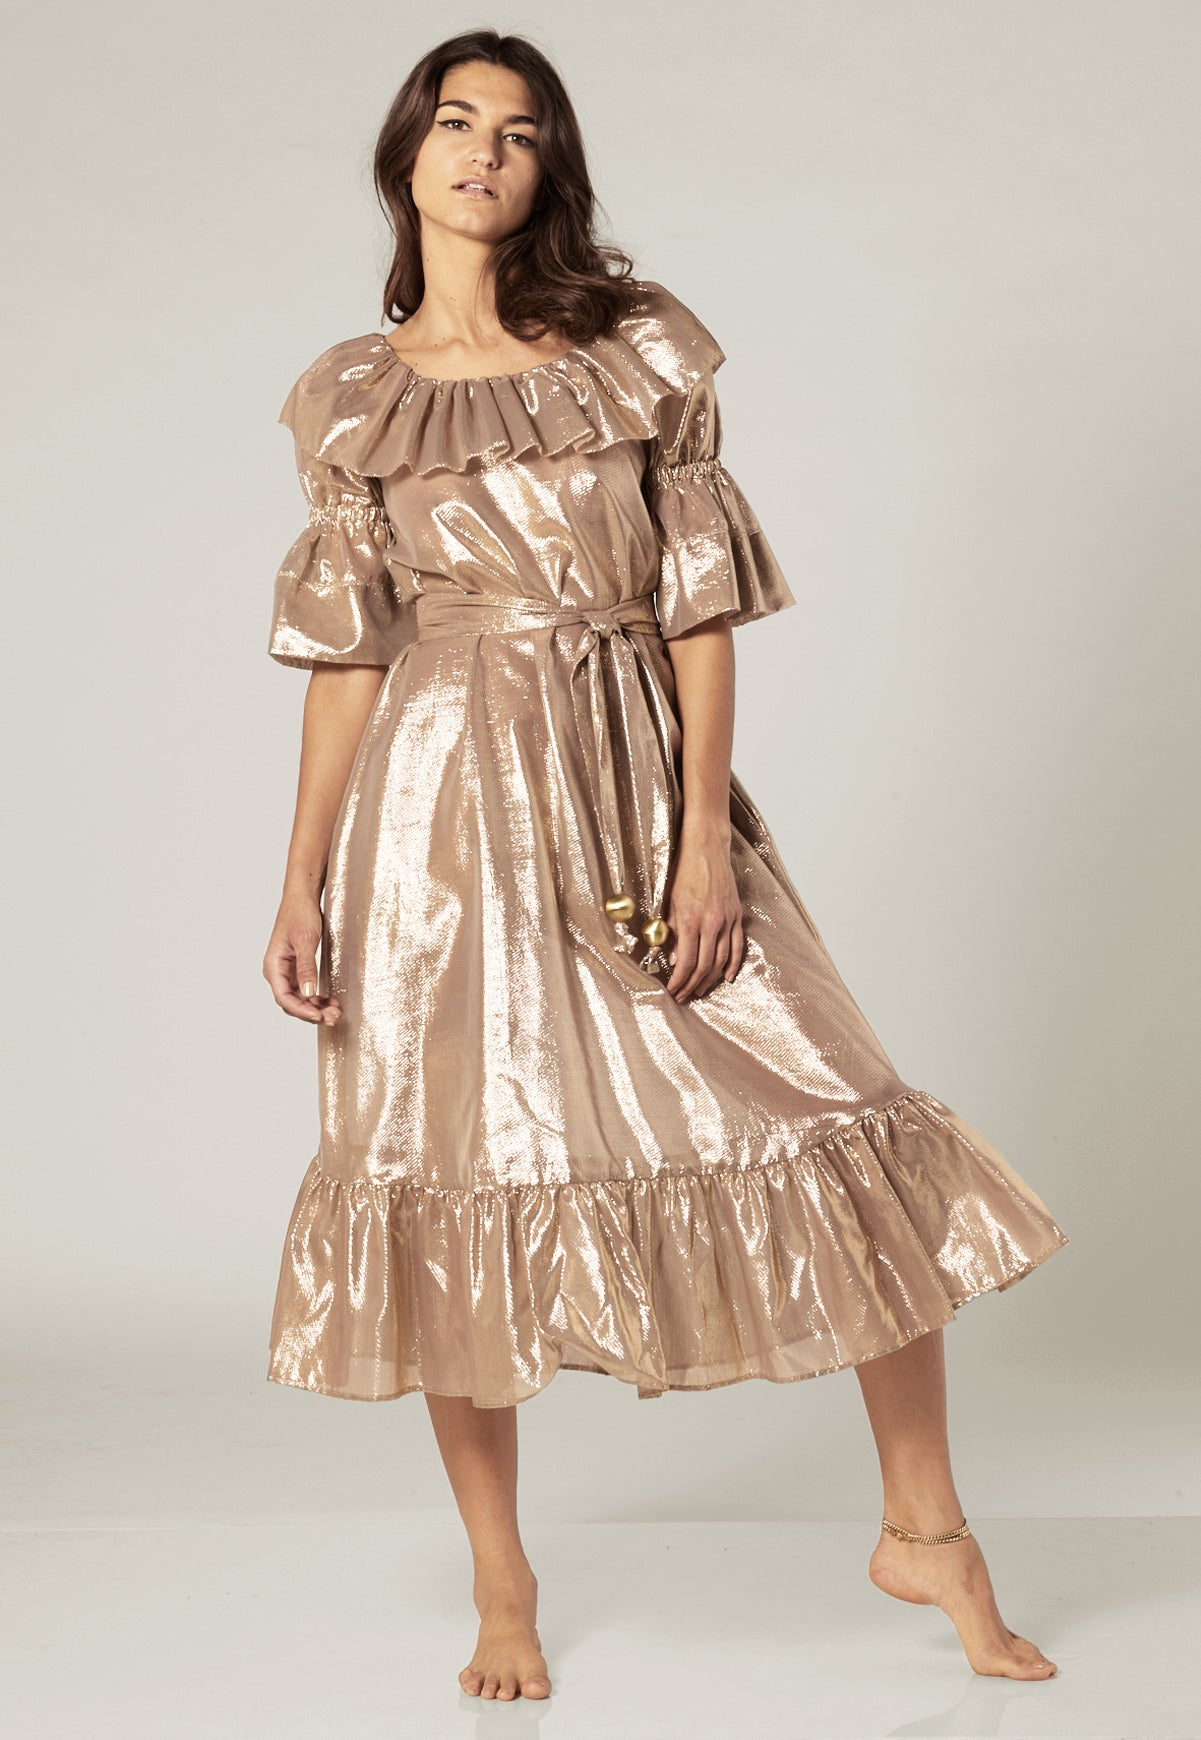 NATASHA GOLD METALLIC DRESS